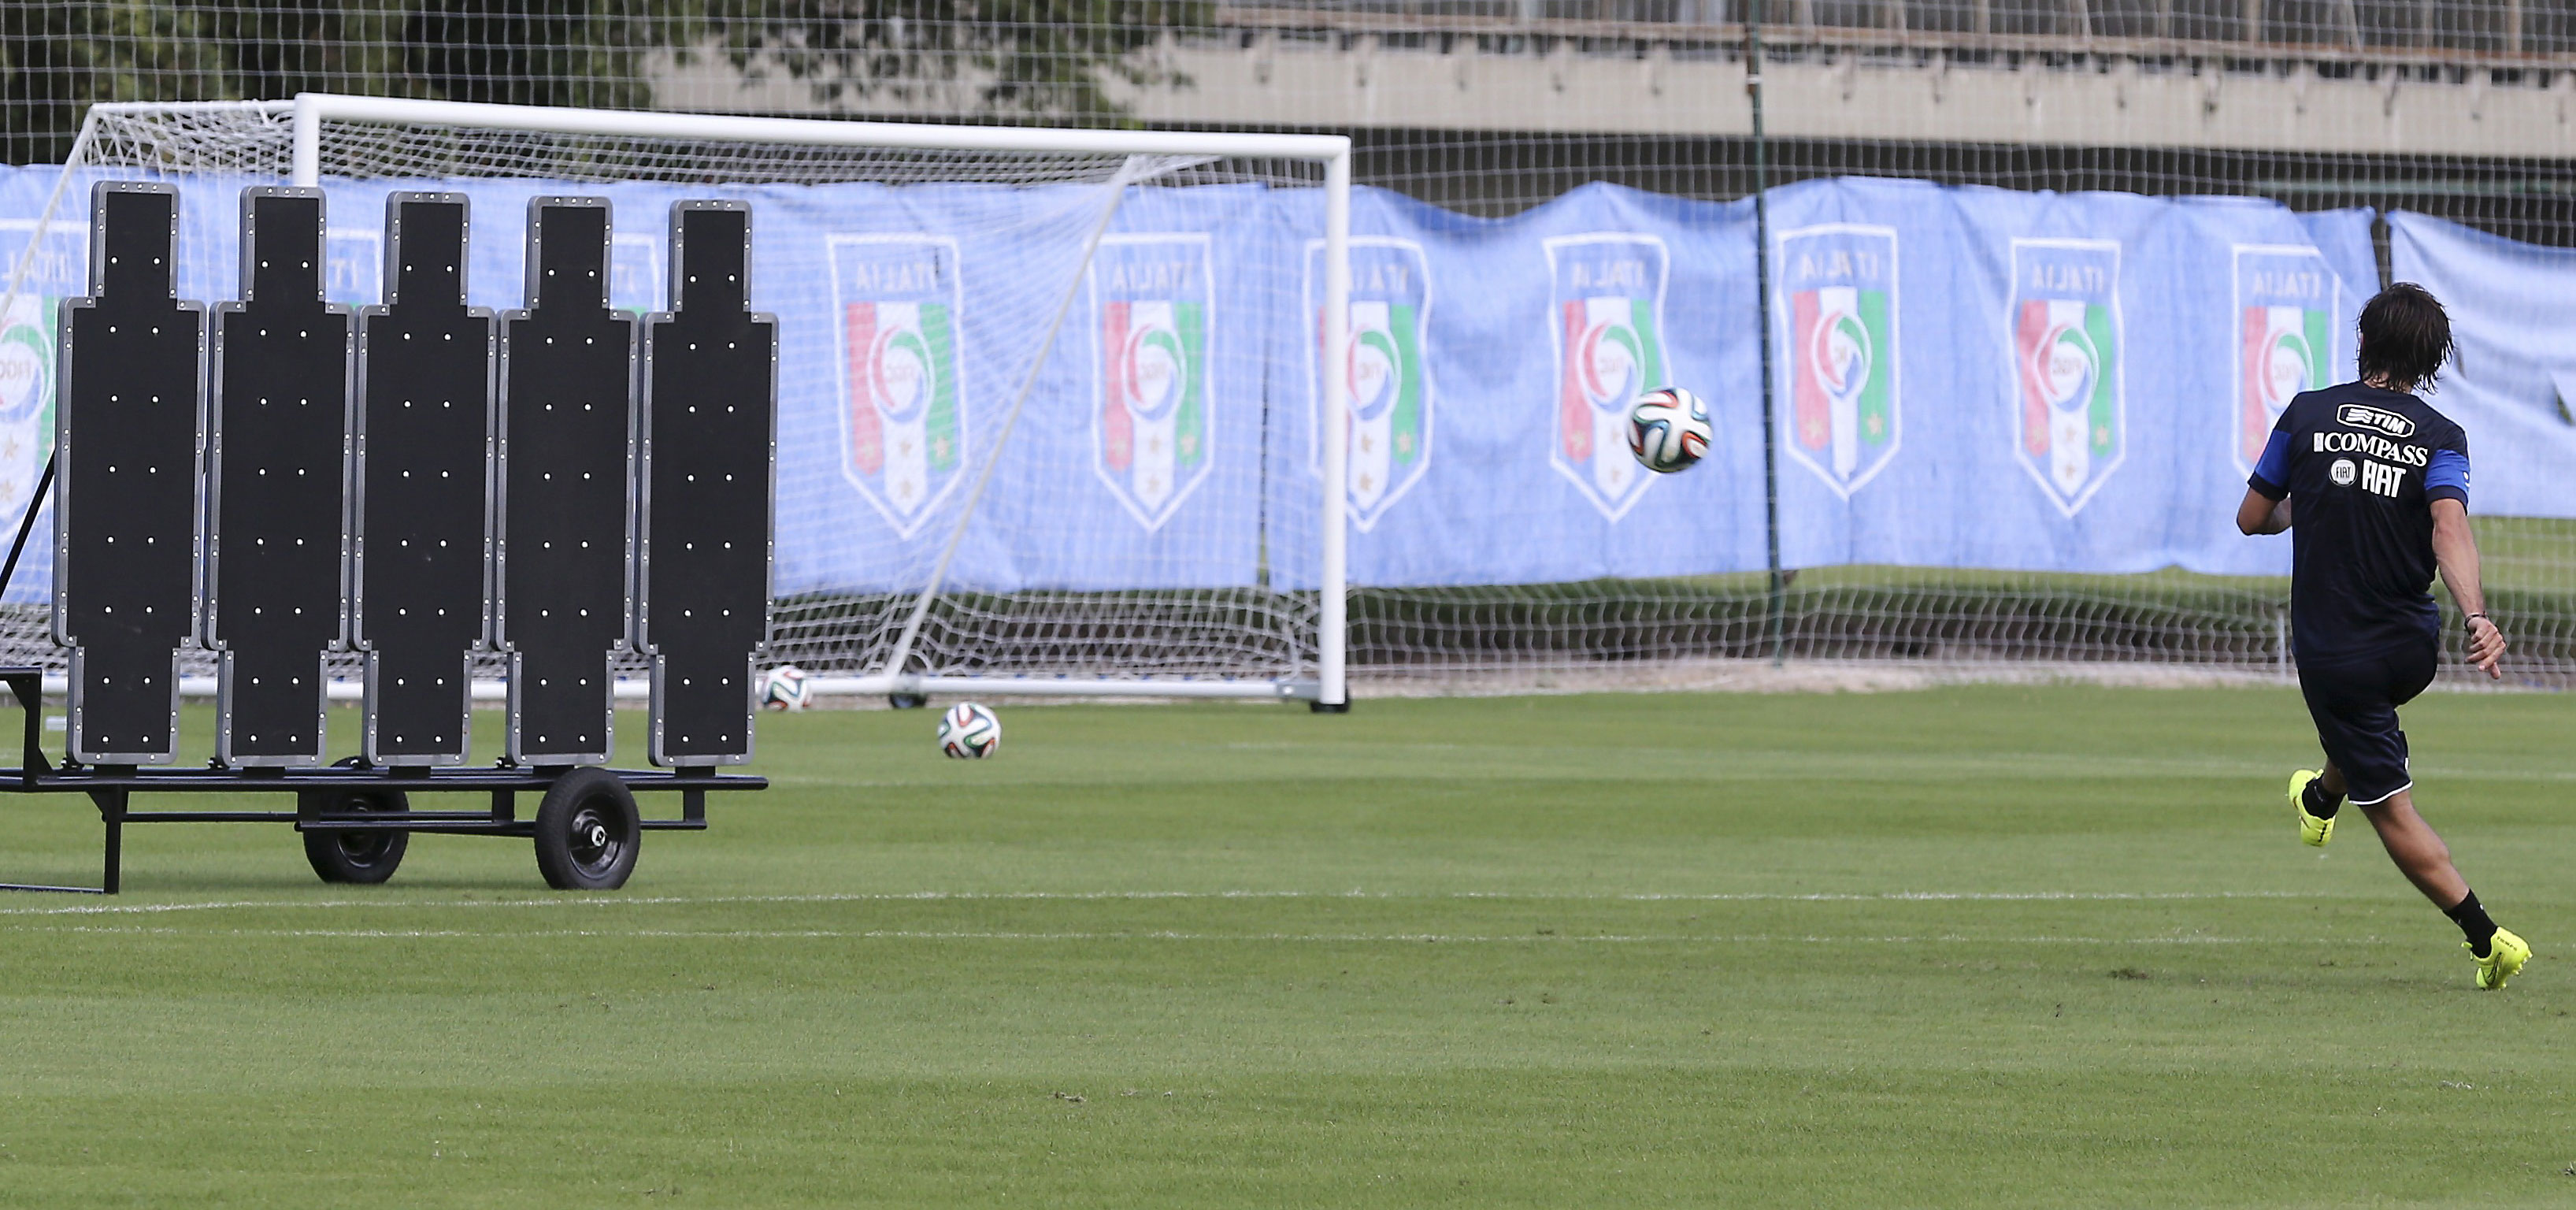 Italy's Andrea Pirlo practices shooting free kicks during a training session for the World Cup in Mangaratiba, Brazil, on June 11.